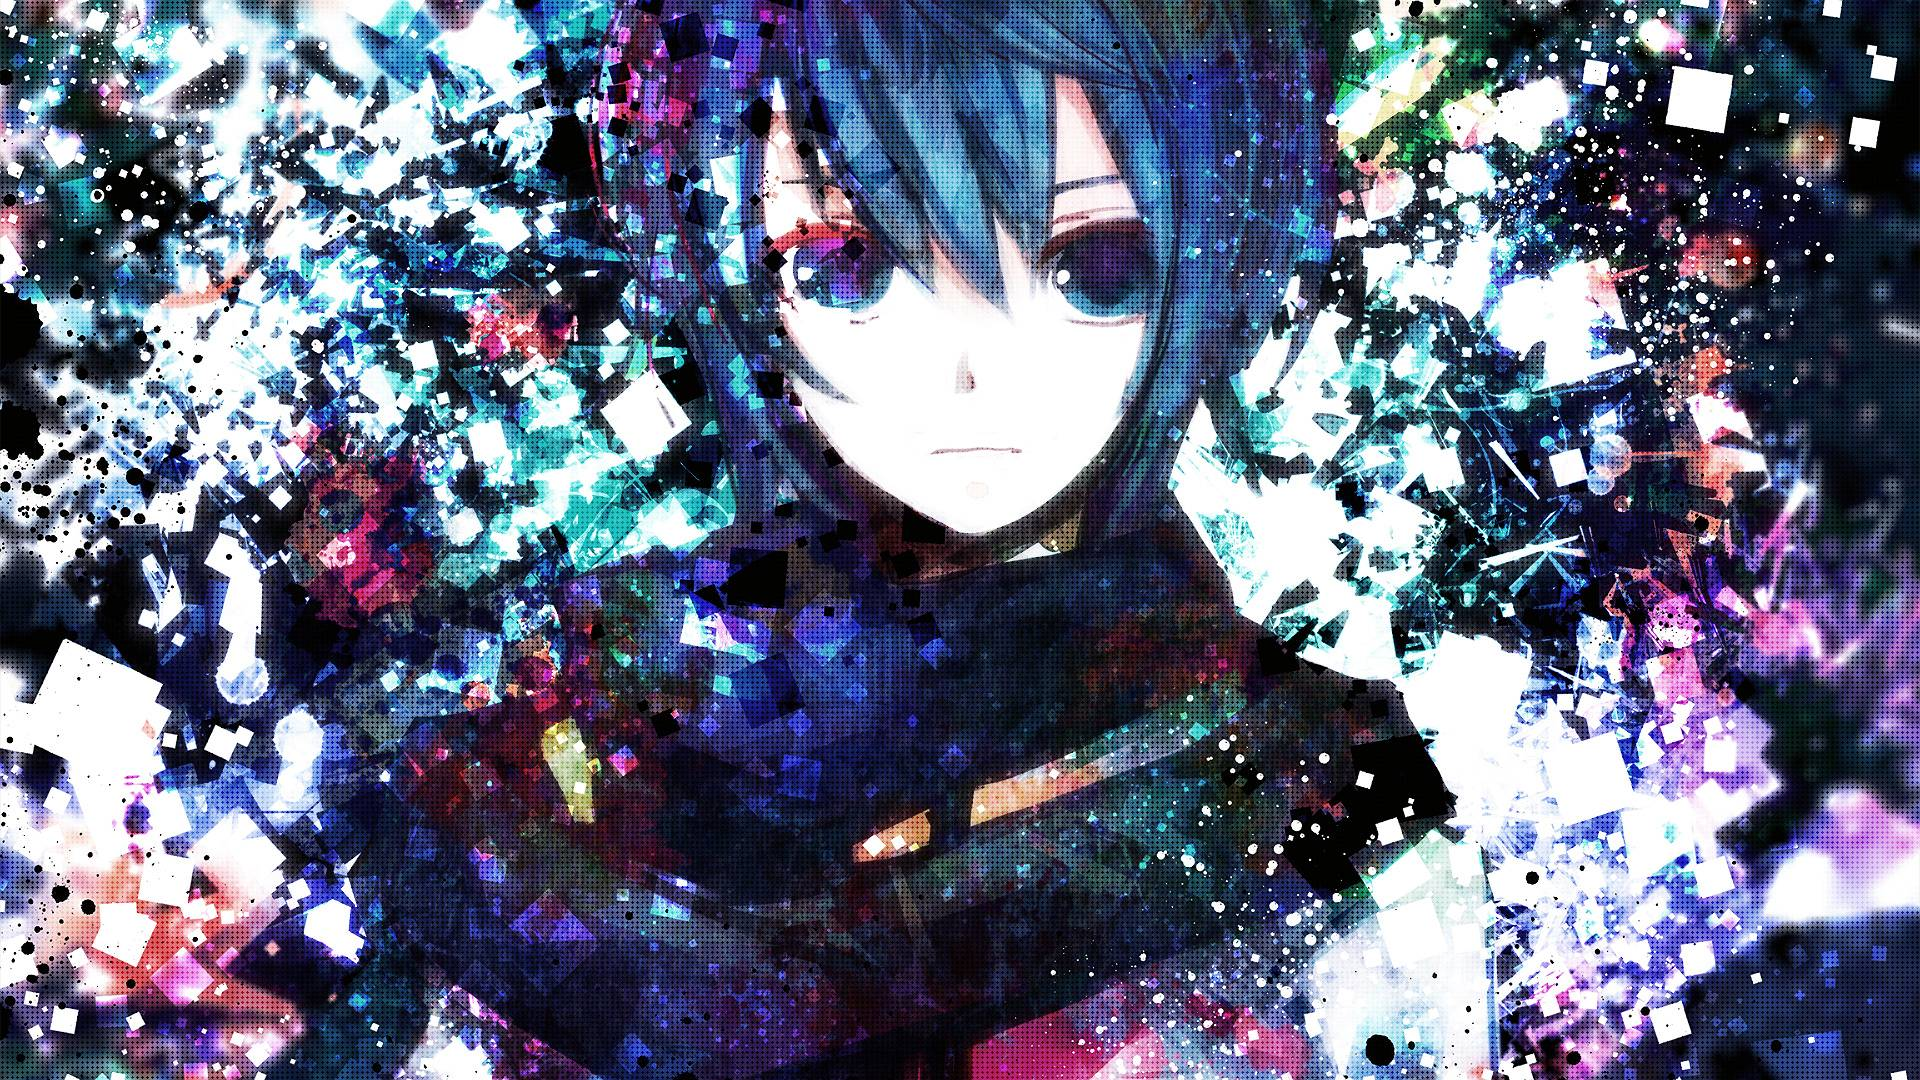 Anime Wallpapers Vocaloid Kaito HD 4K Download For Mobile iPhone & PC